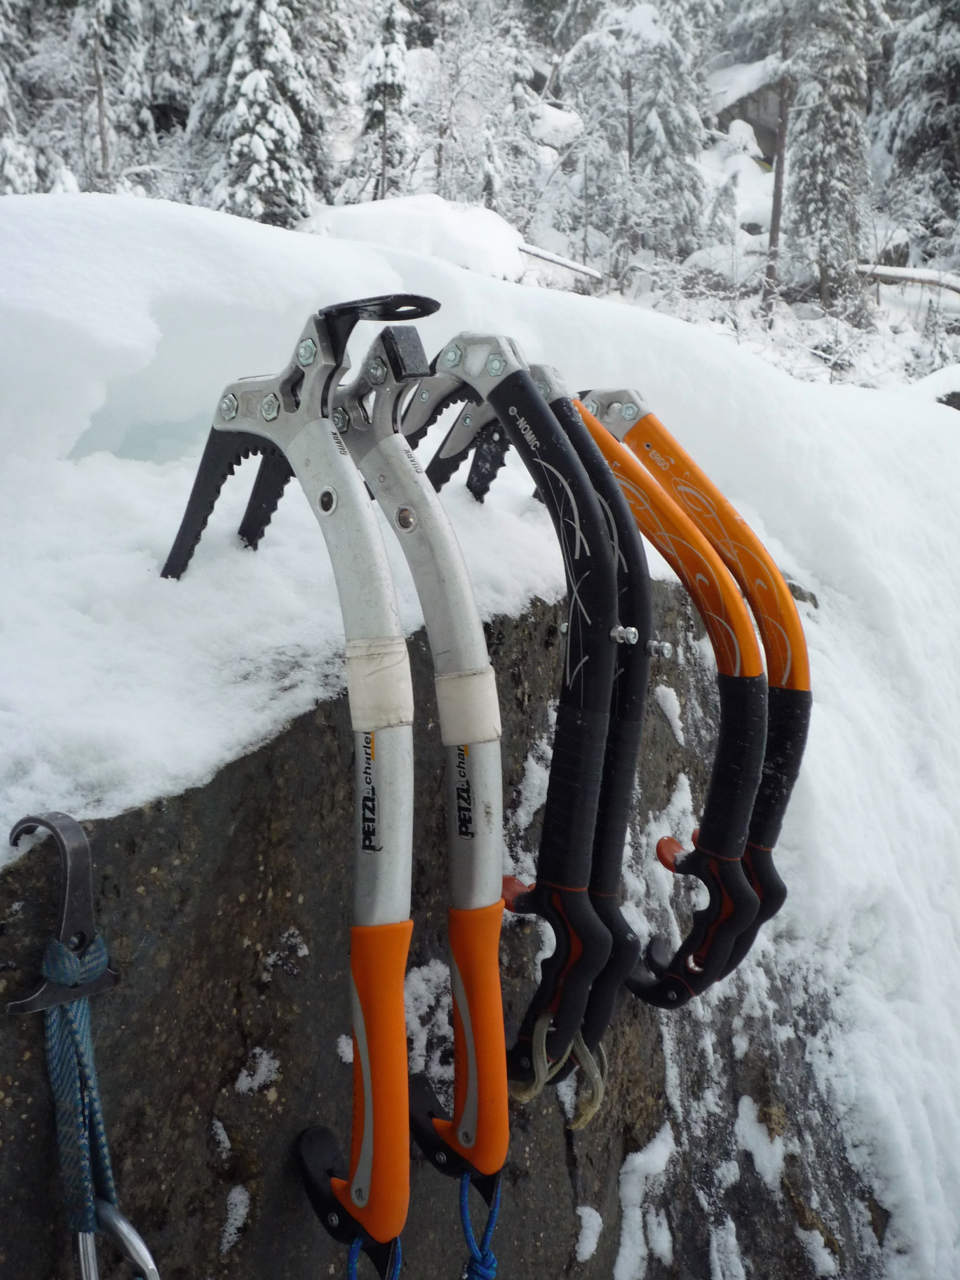 Petzl ice axes